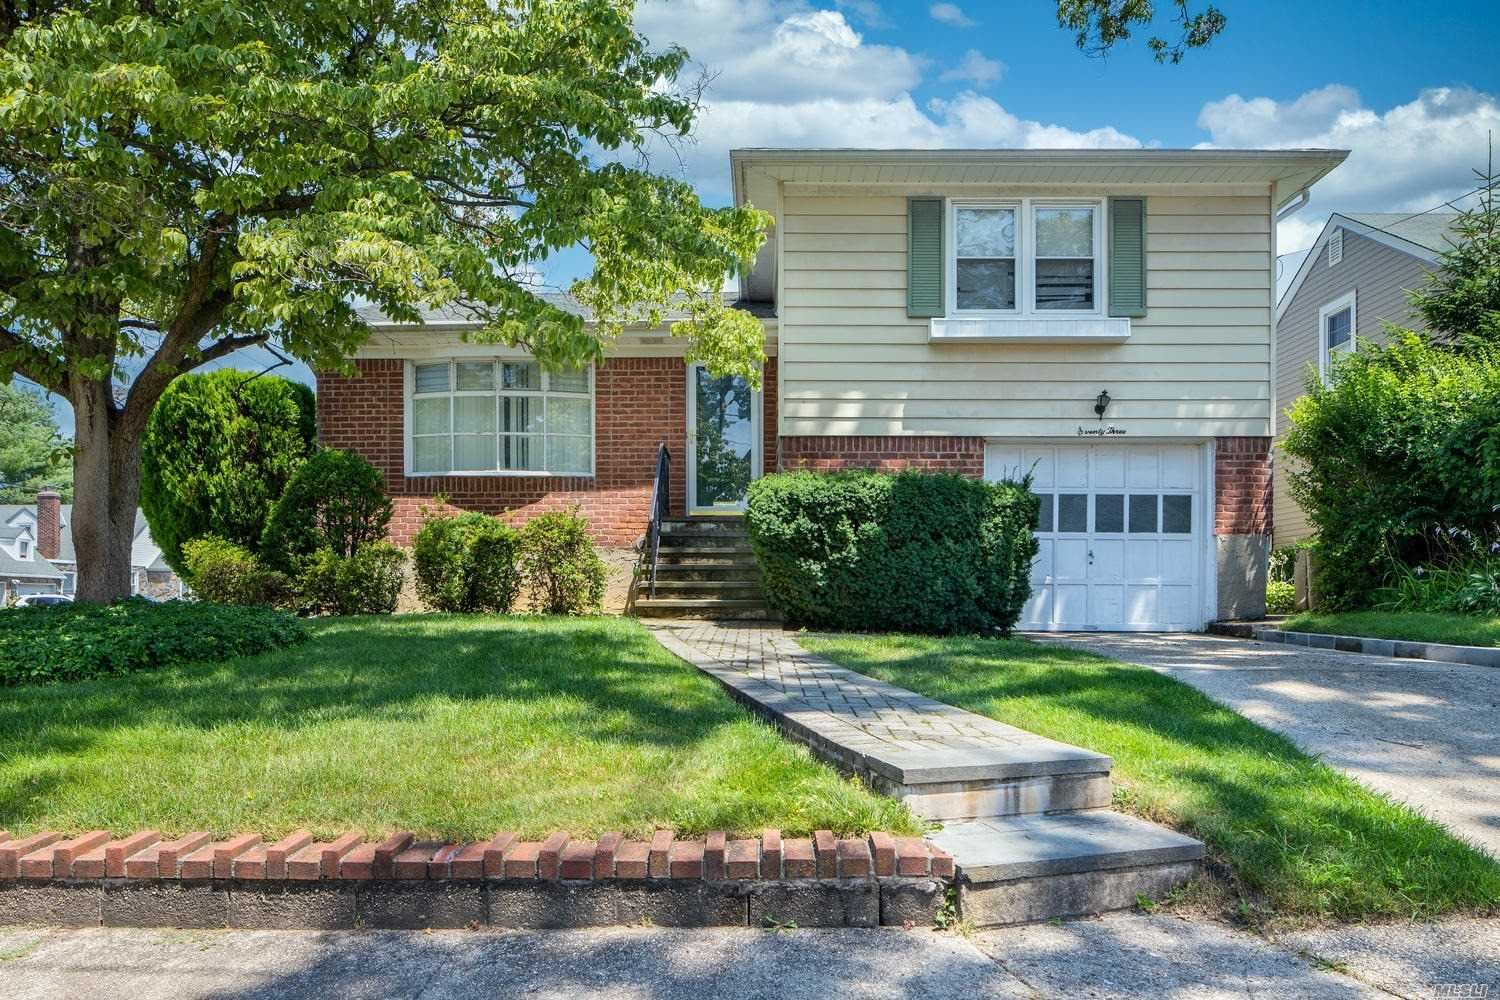 73 Whittier St, Lynbrook, NY 11563 - MLS#: 3235731